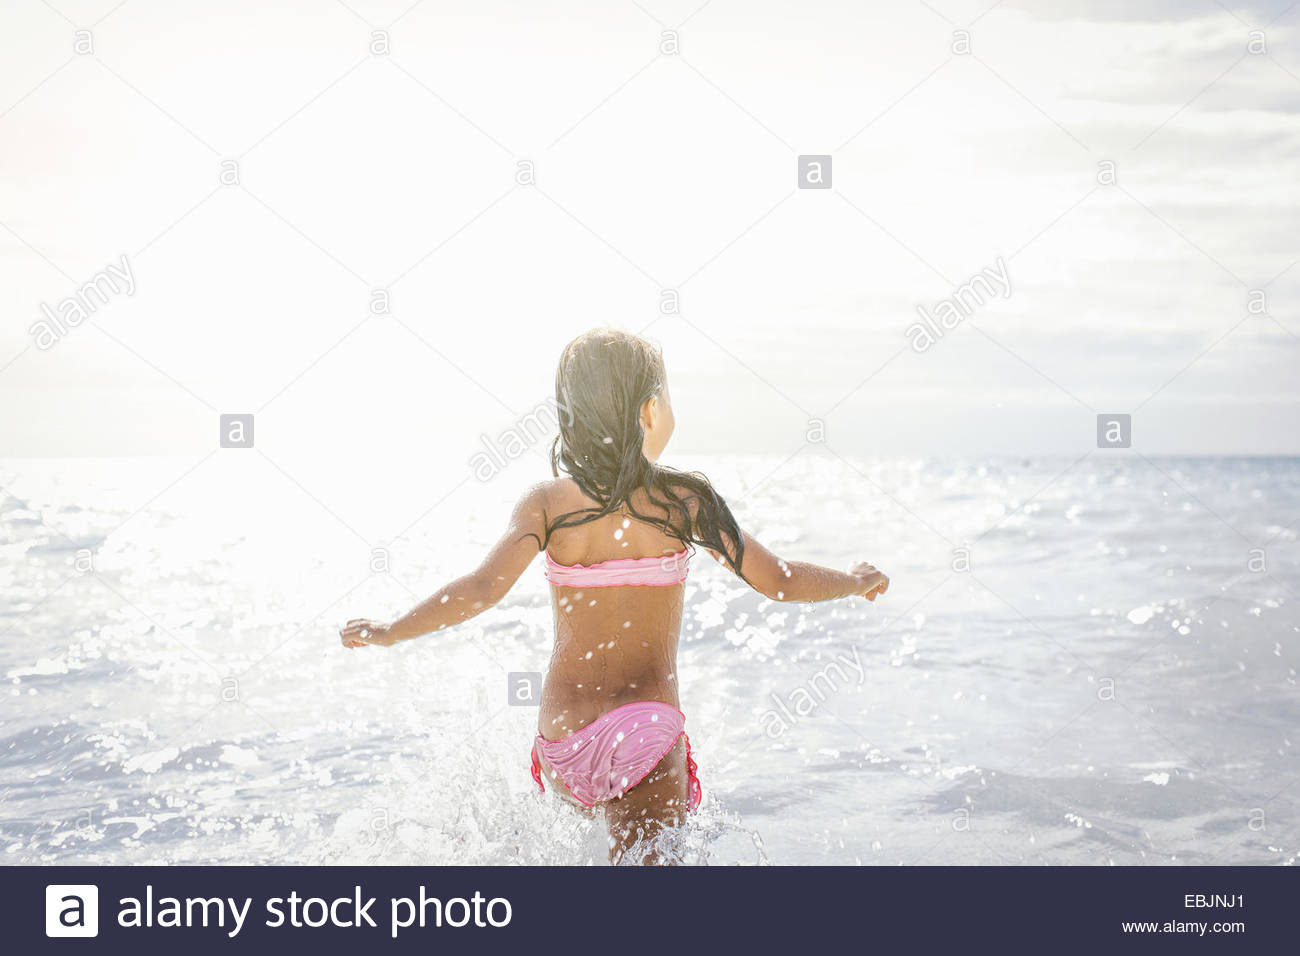 Rear view of girl running and splashing in sea, Tuscany, Italy - Stock Image